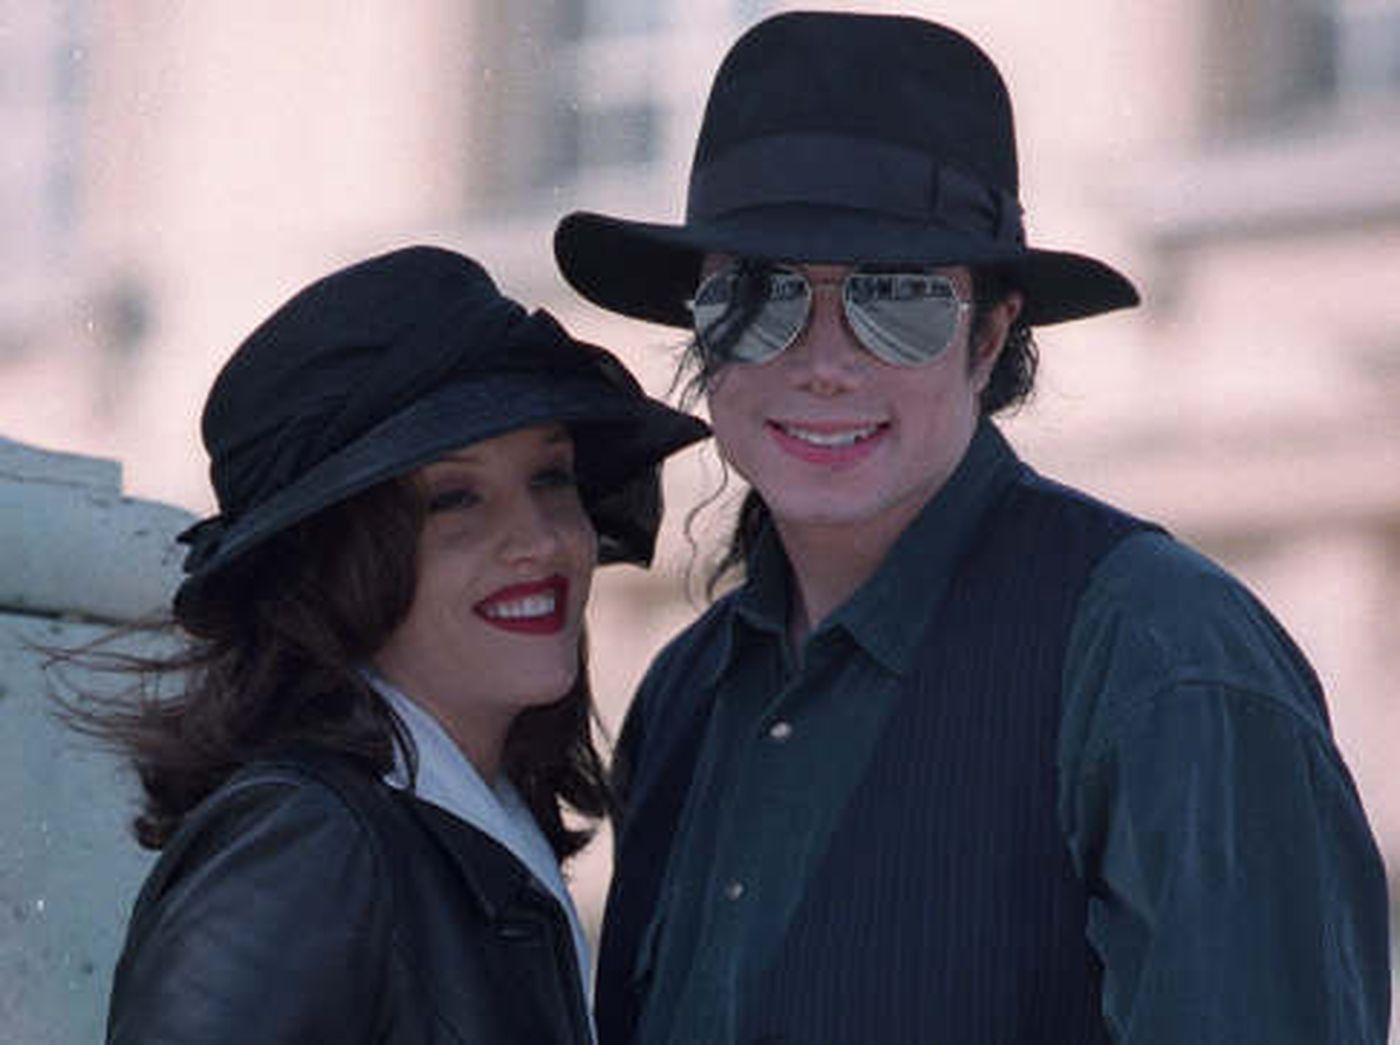 Lisa Marie Presley's marriage to Micheal Jackson was considered a mismatched celebrity relationship